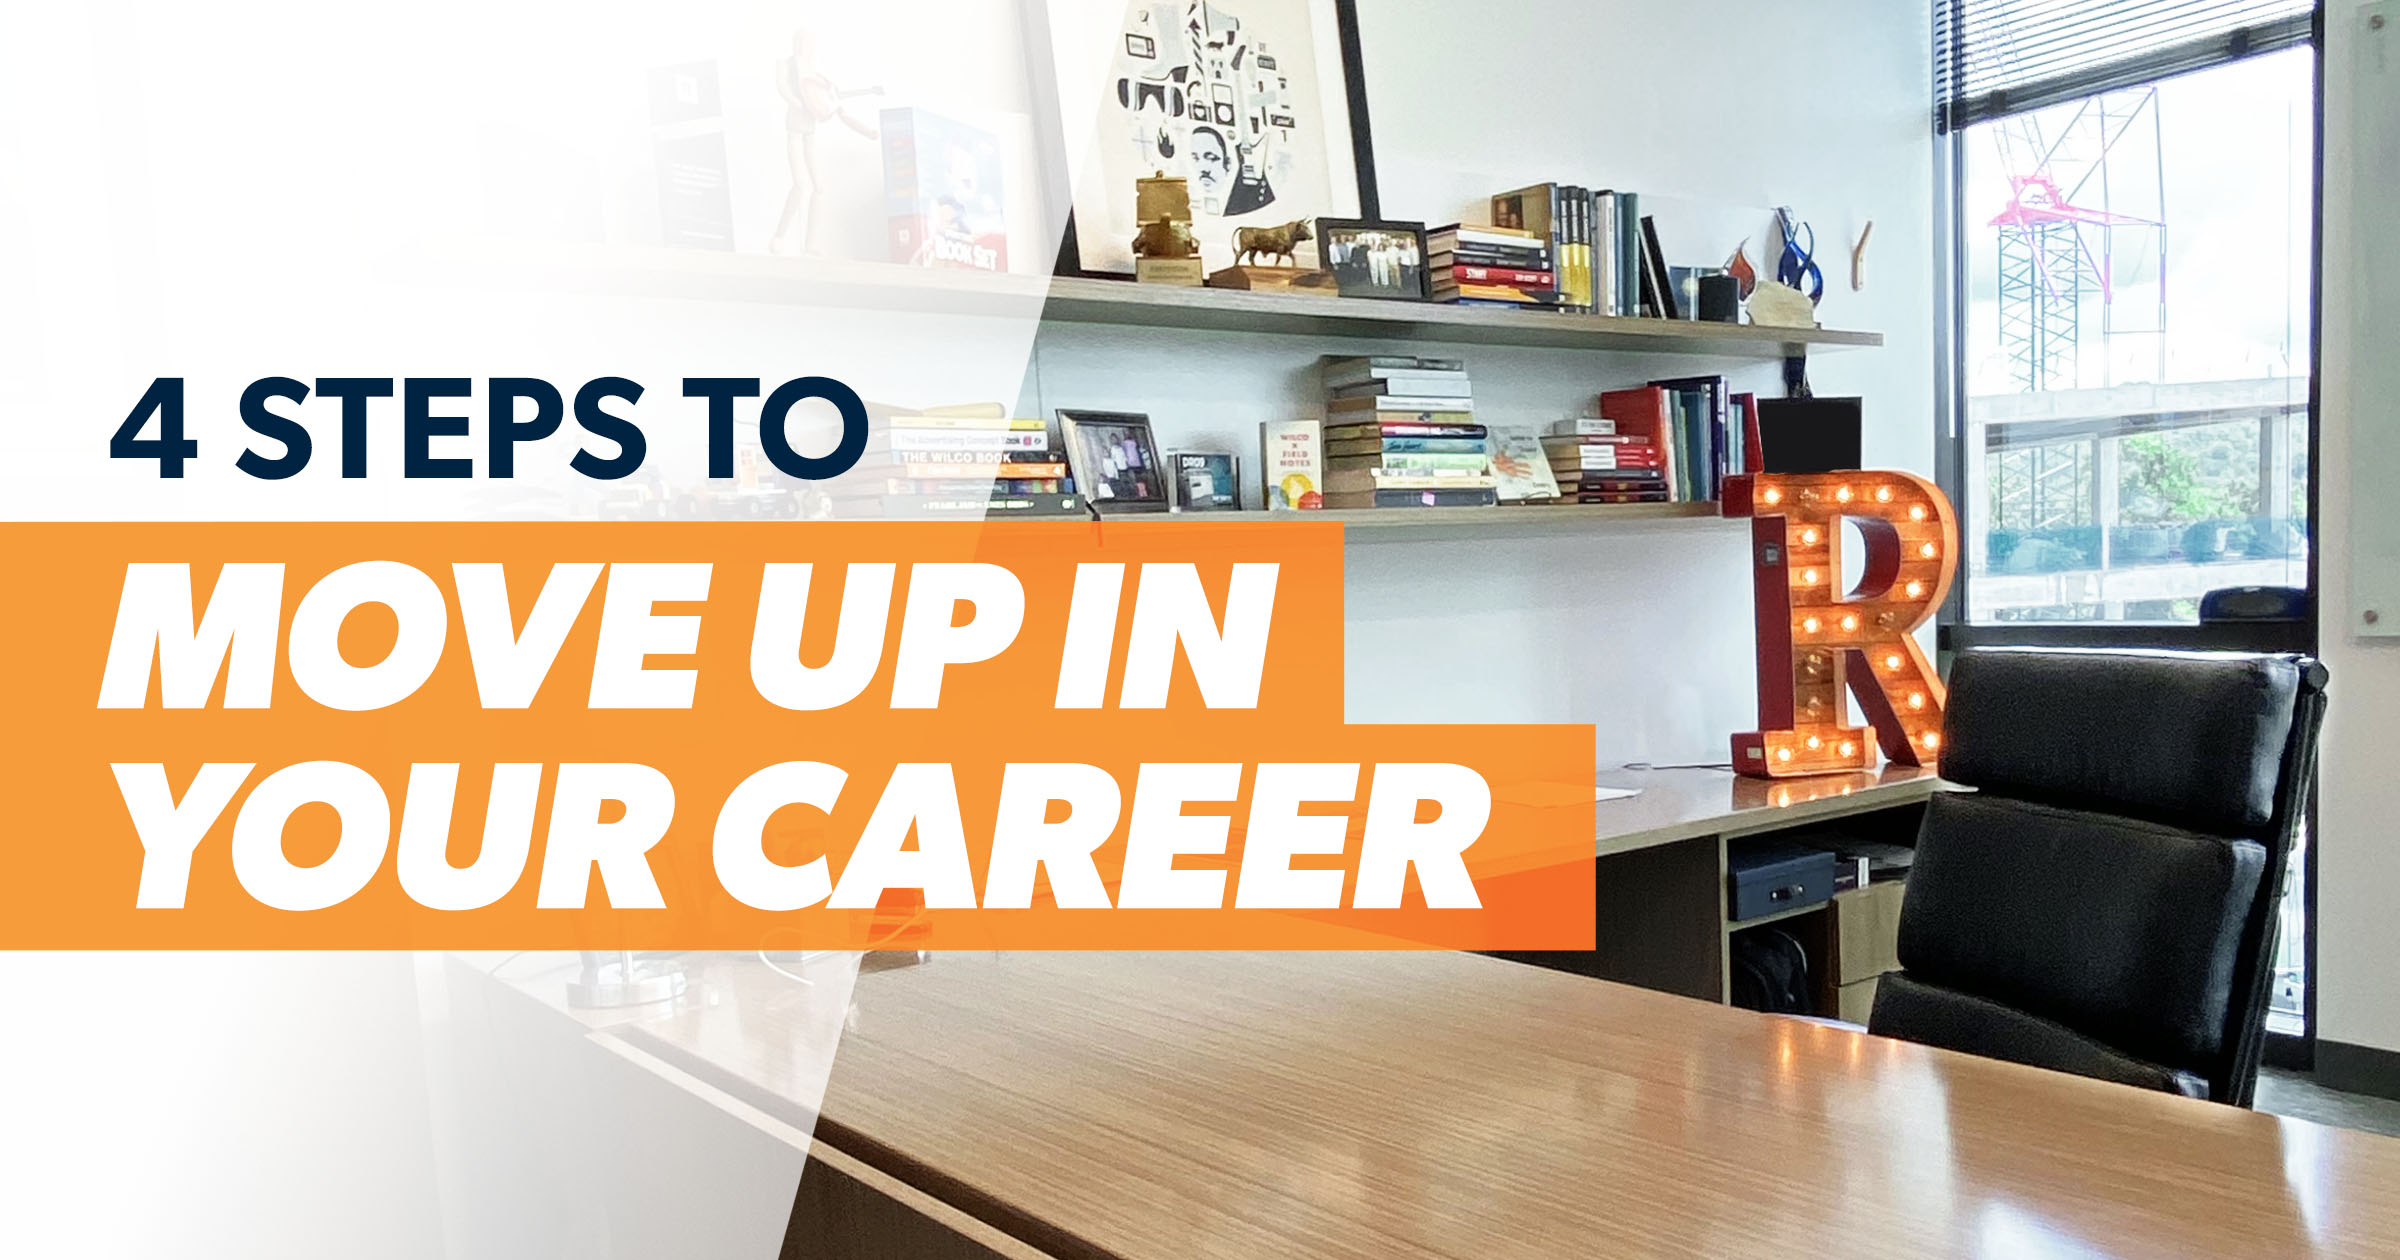 4 Steps to Move Up in Your Career